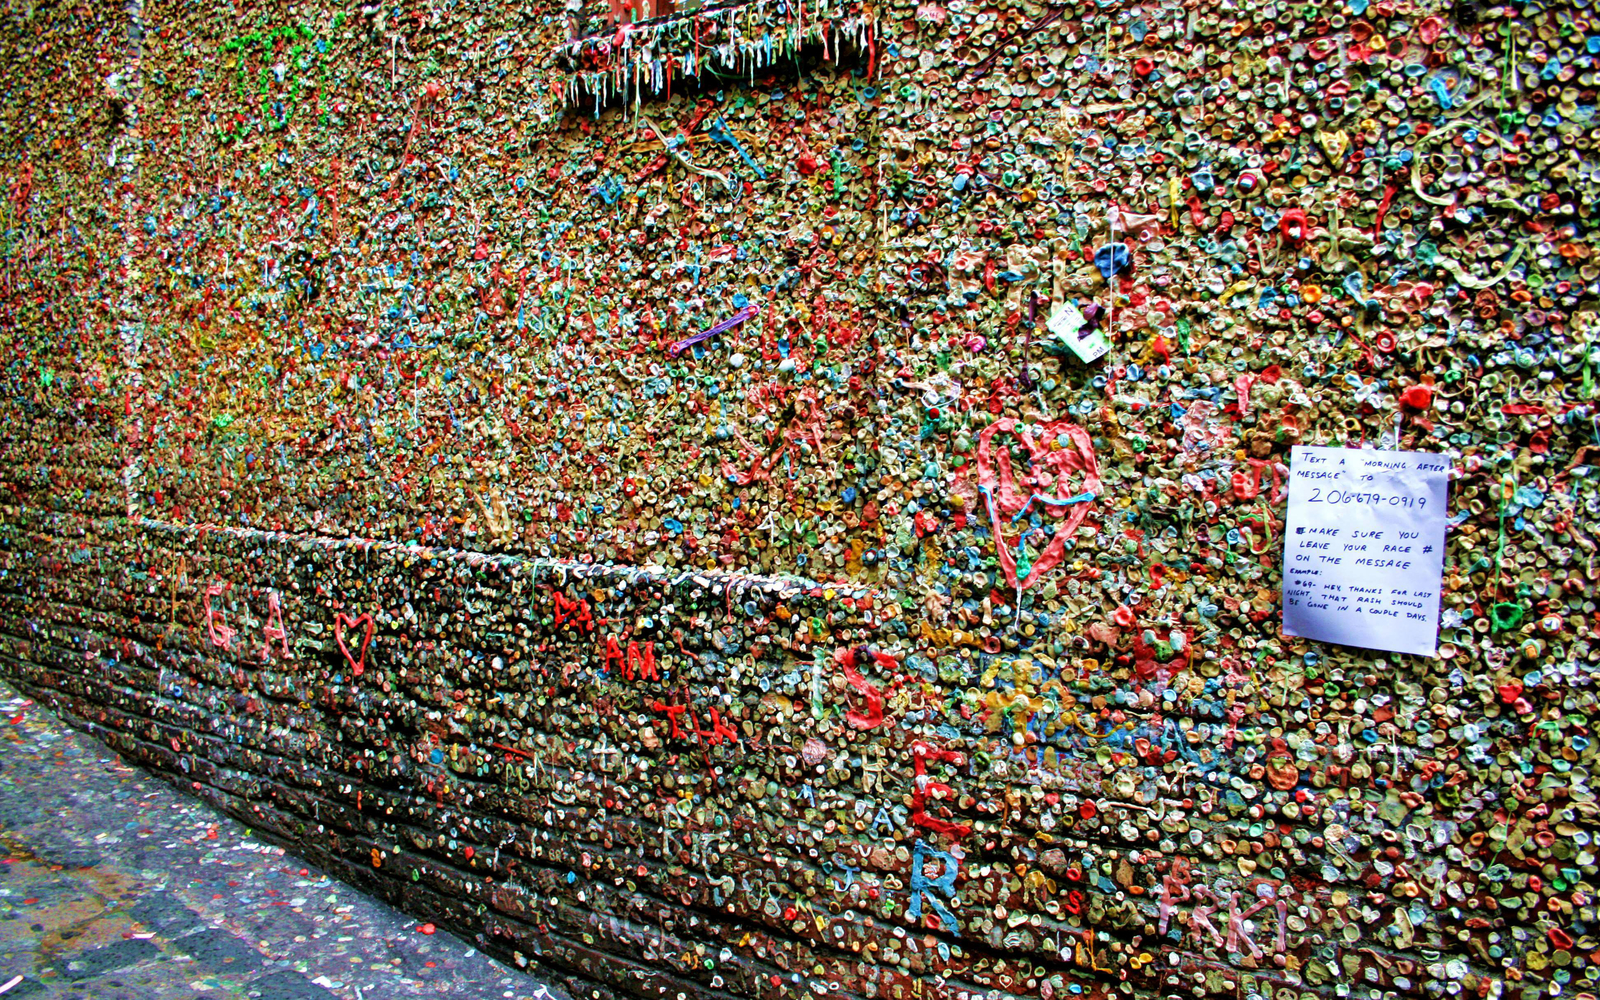 Hiram M Chittenden Locks Visitor Center Seattle, The Seattle Gum Wall Gets a Cleaning | Travel + Leisure